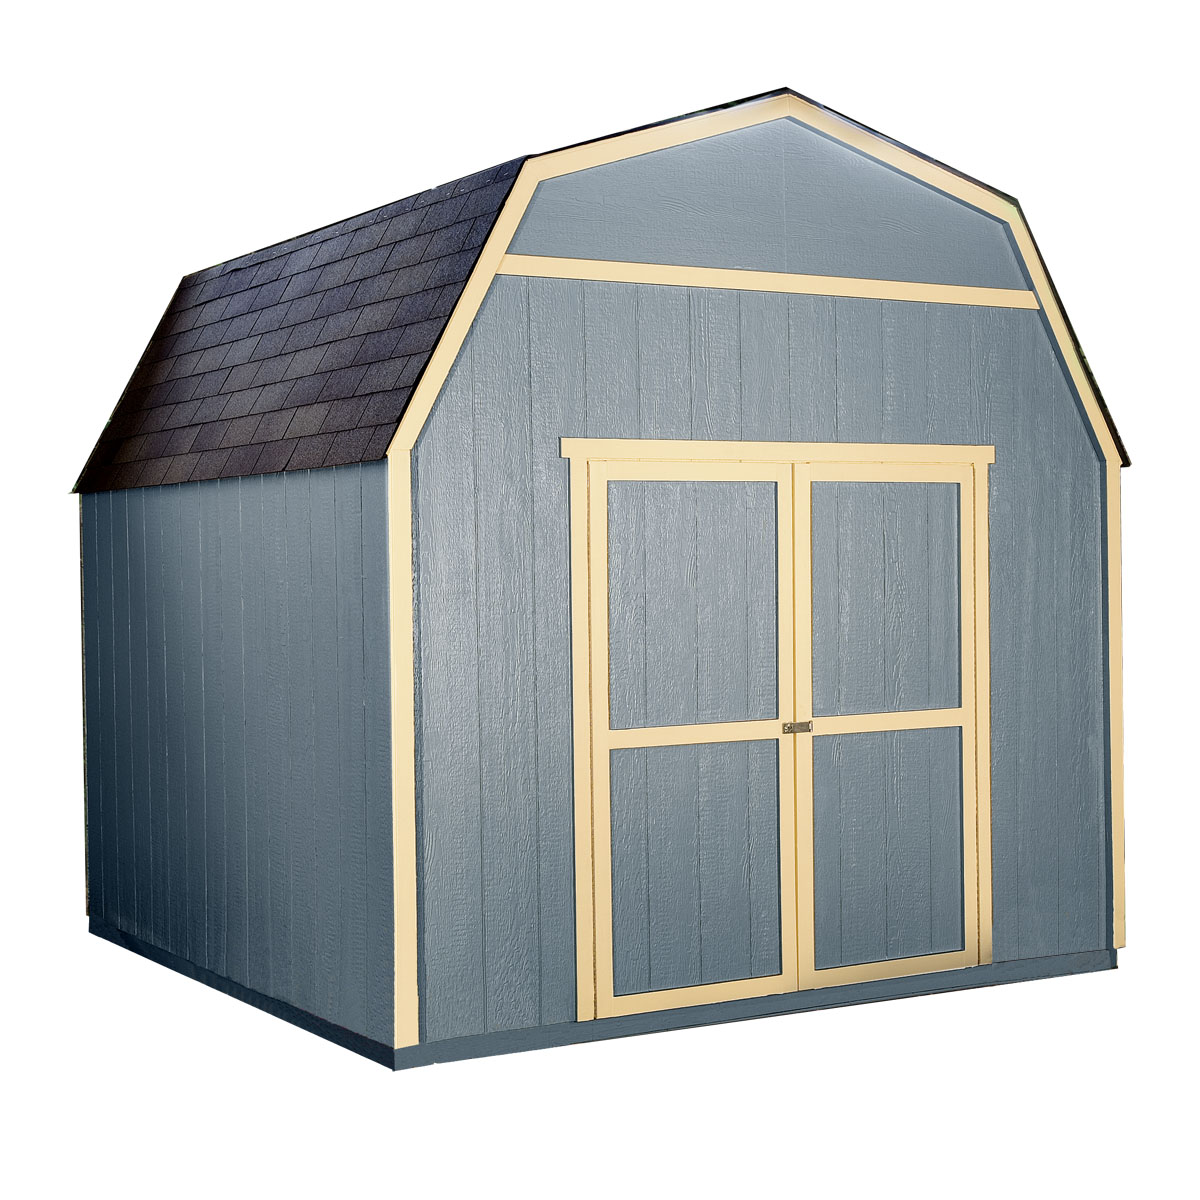 shed with loft for yard and garden storage 10x10 verona